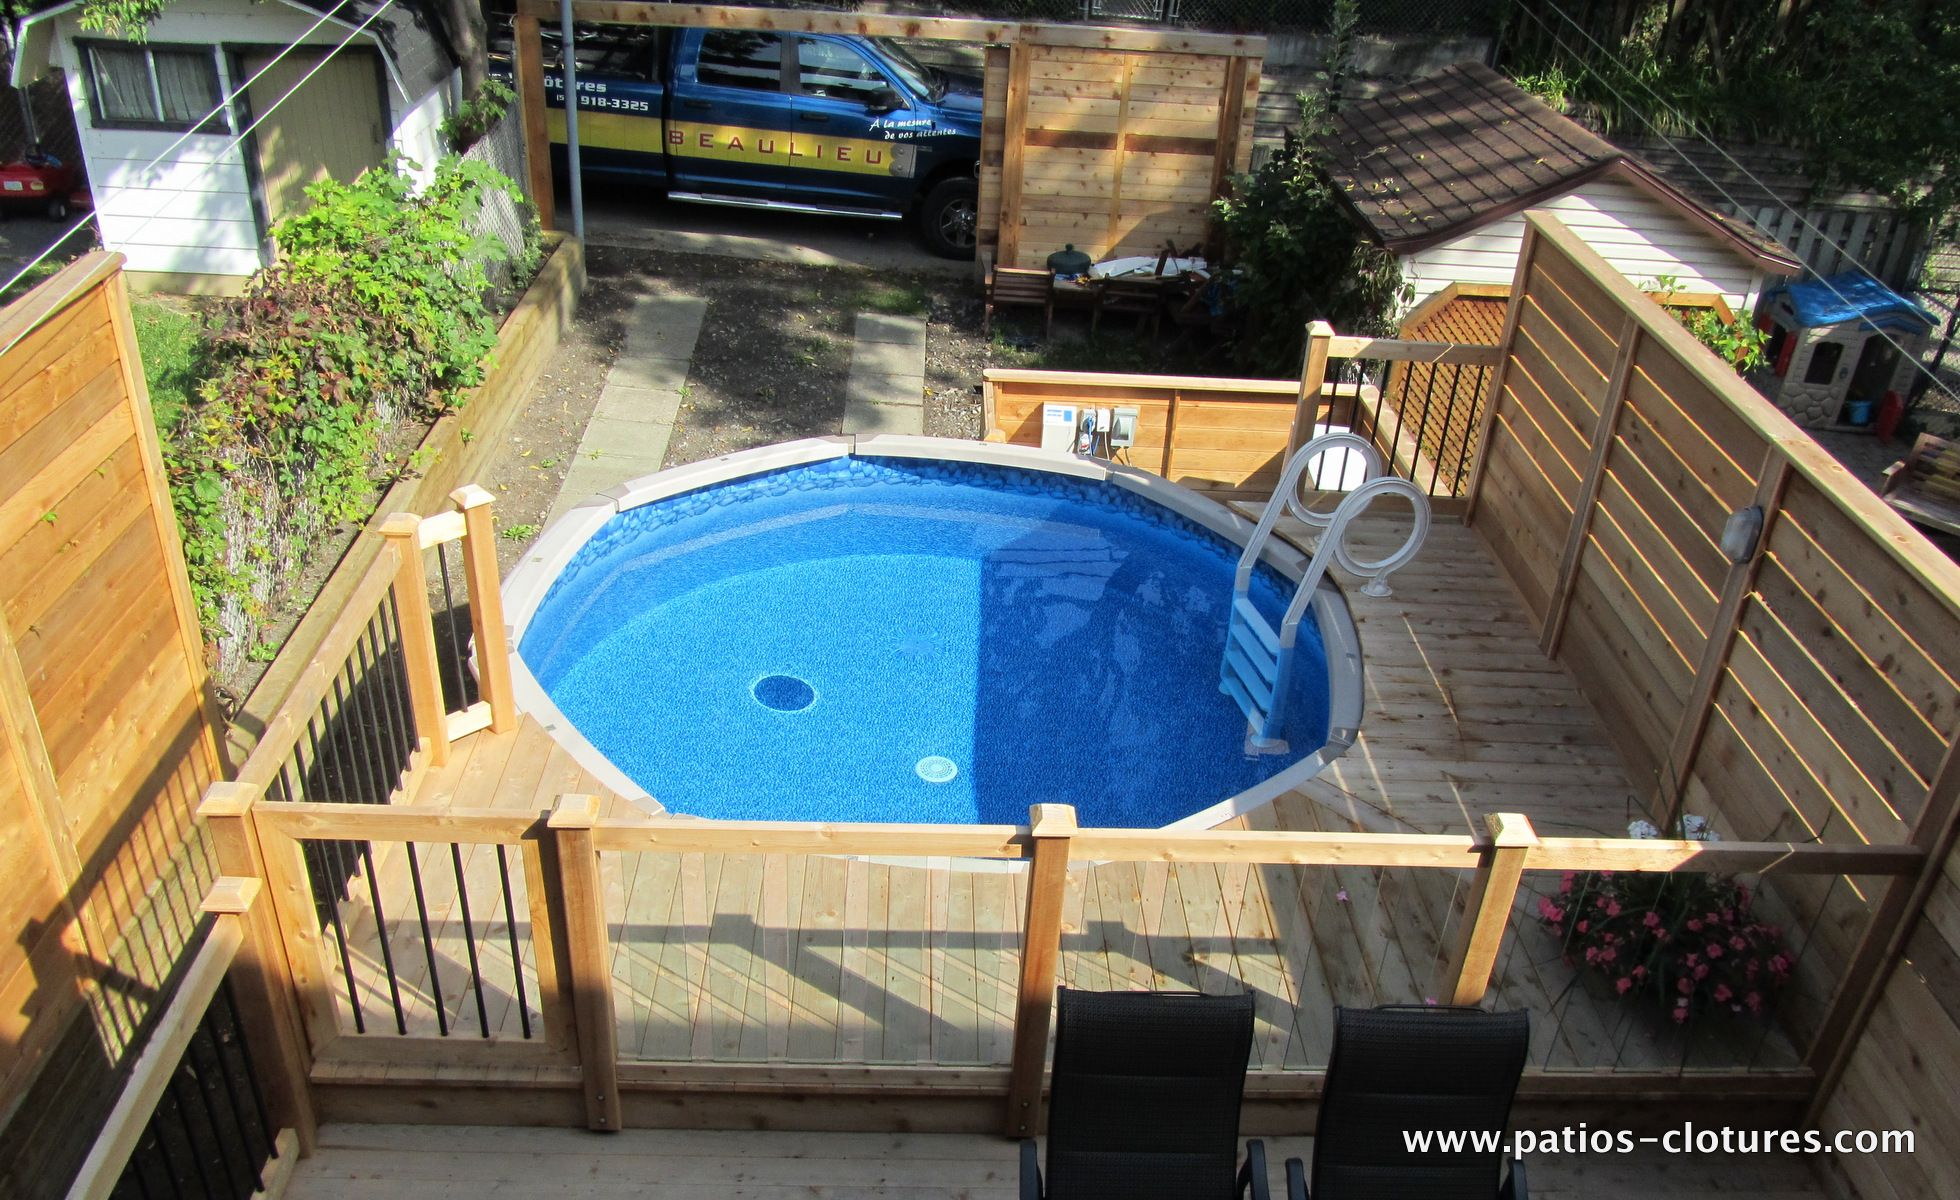 Aboveground pool deck with tempered glass railing, a